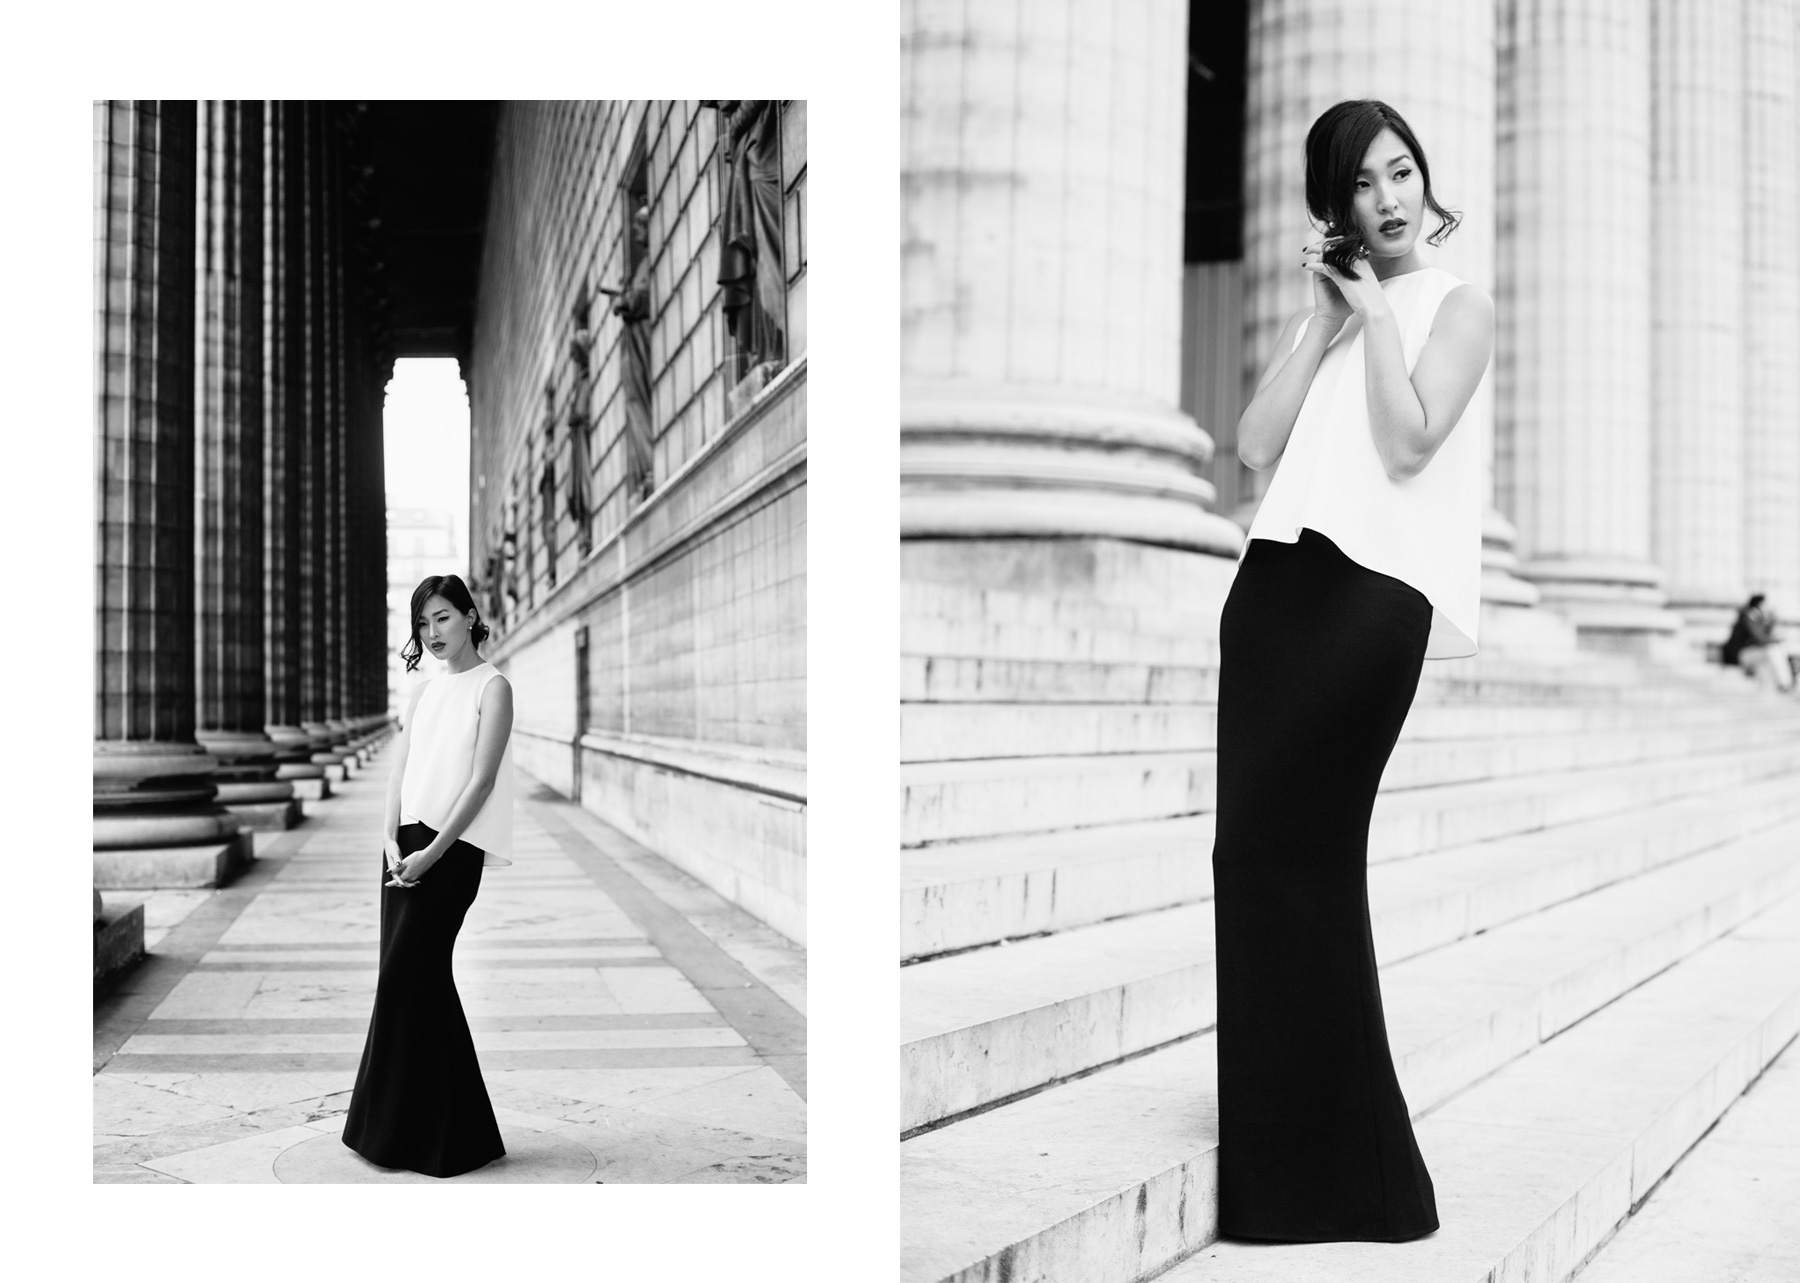 Nicole Warne by Carin Olsson (Paris in Four Months)